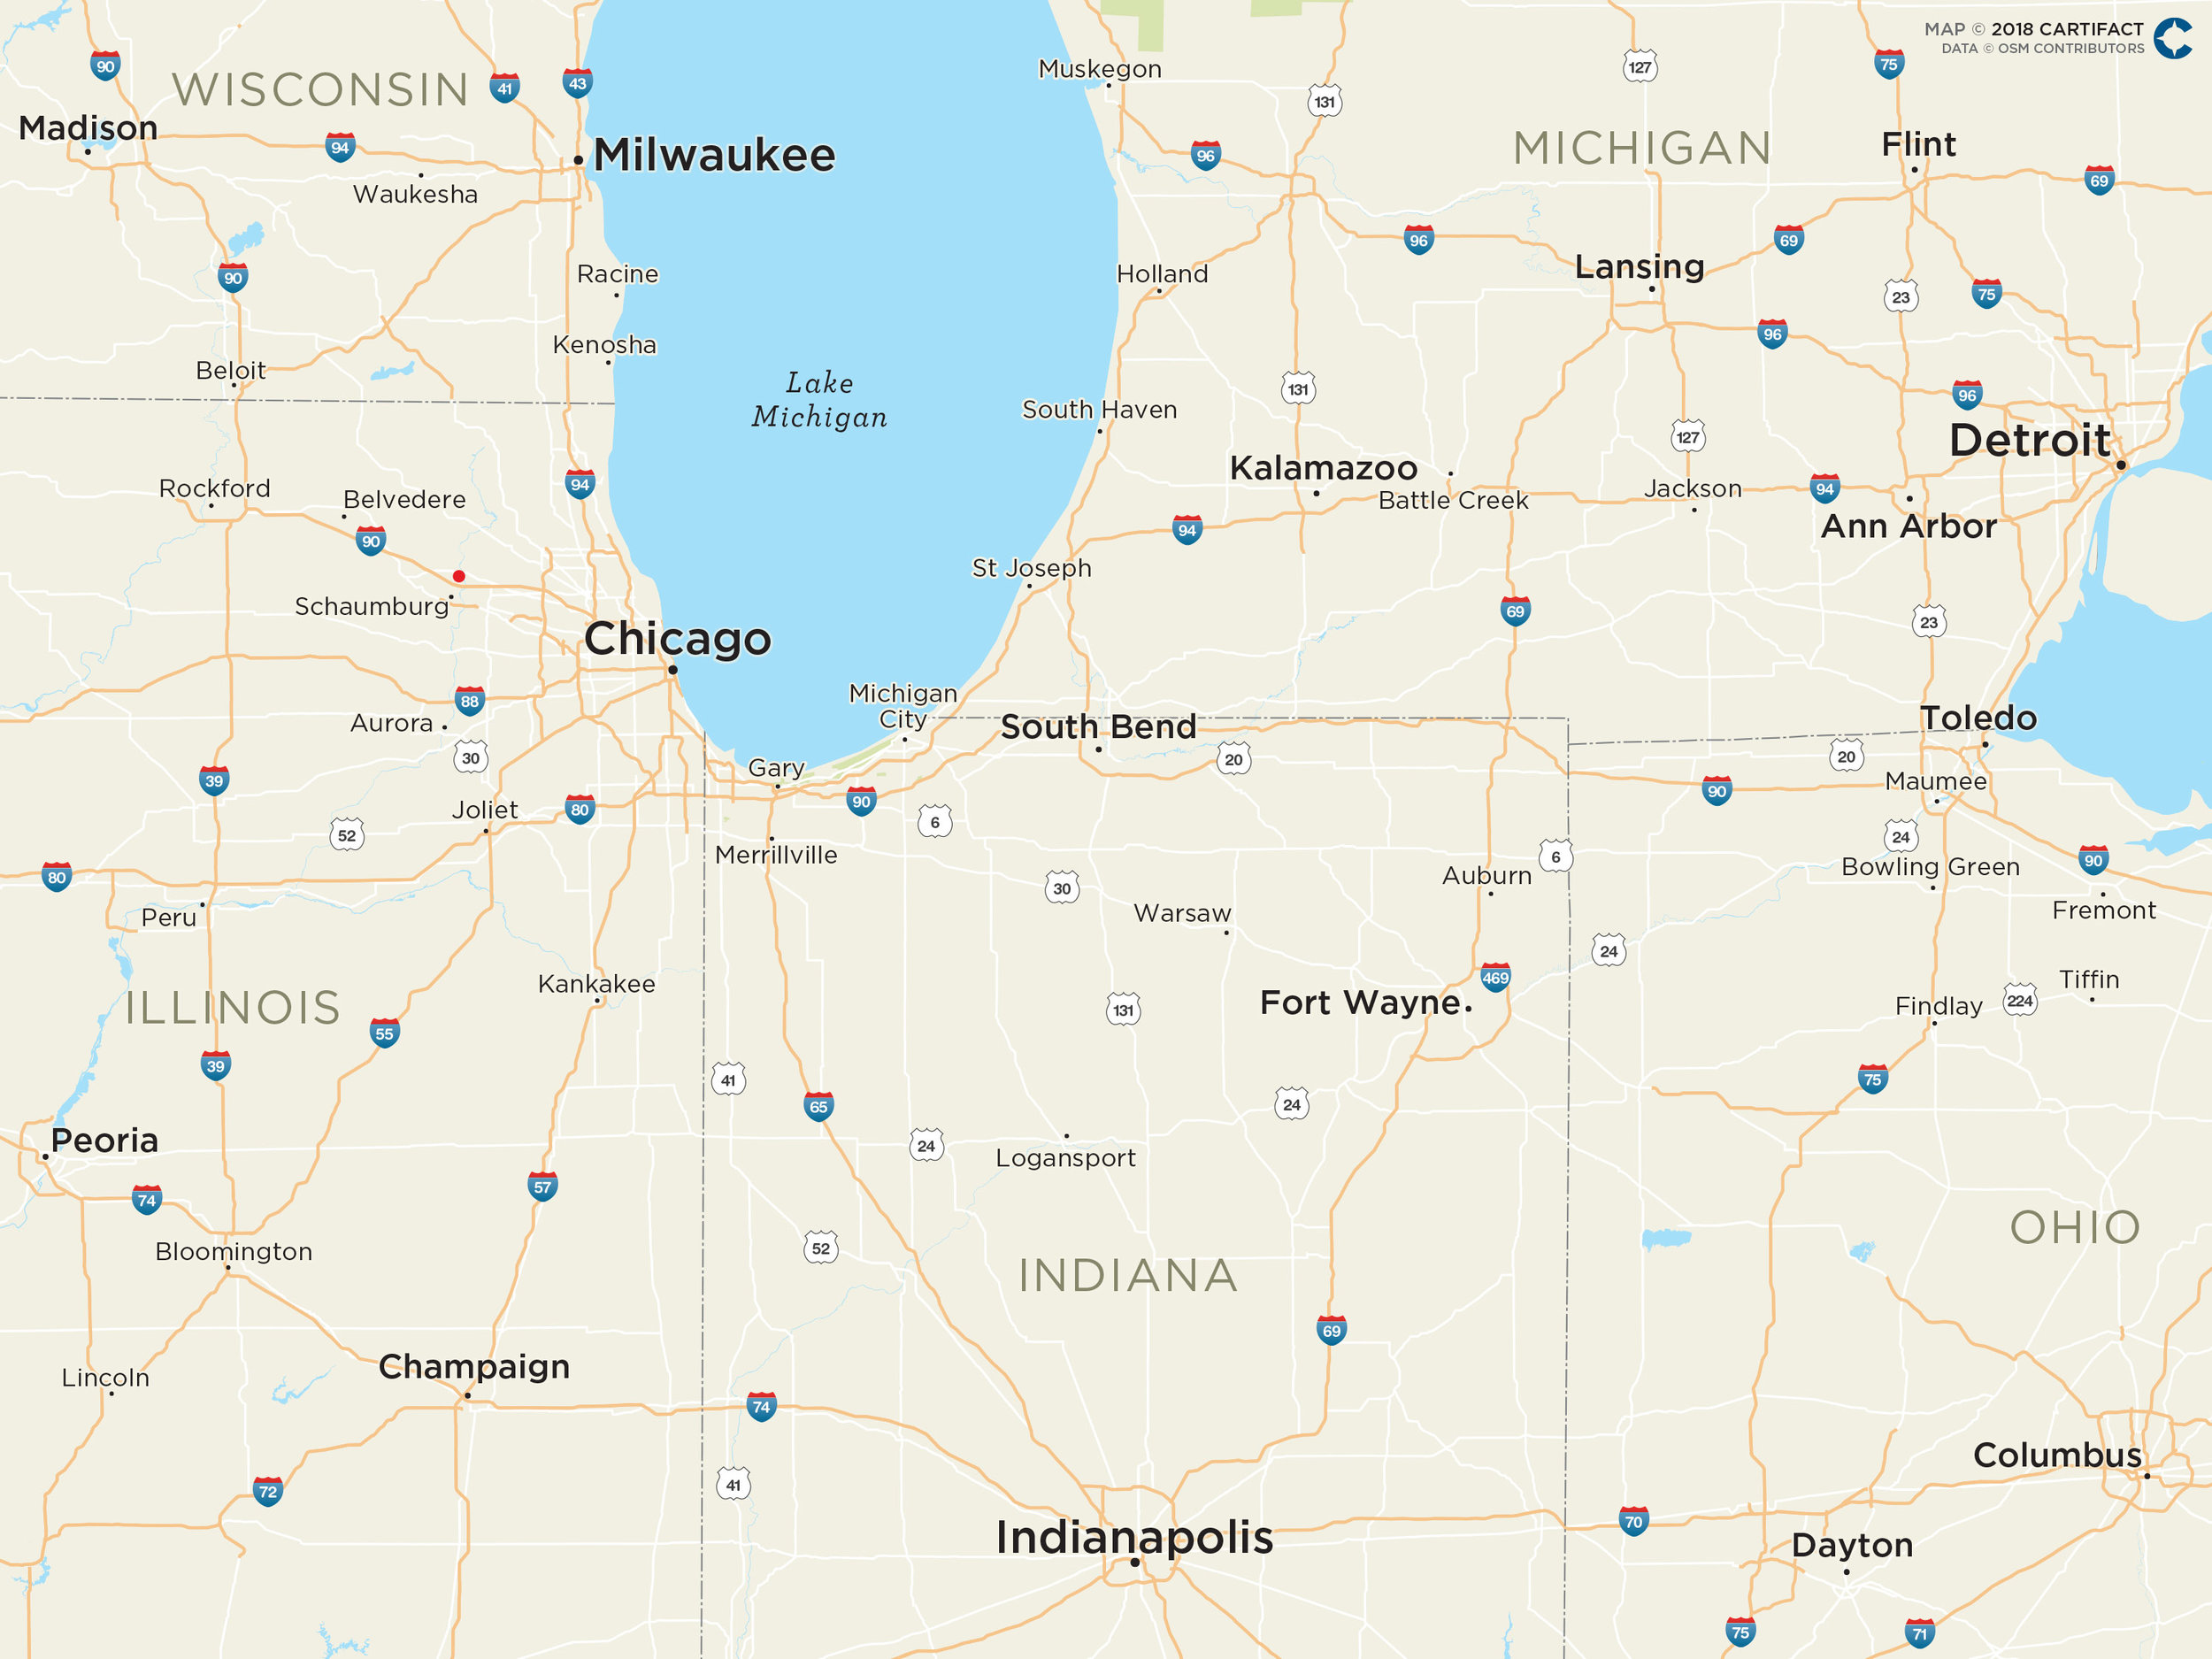 Midwest Map.jpg